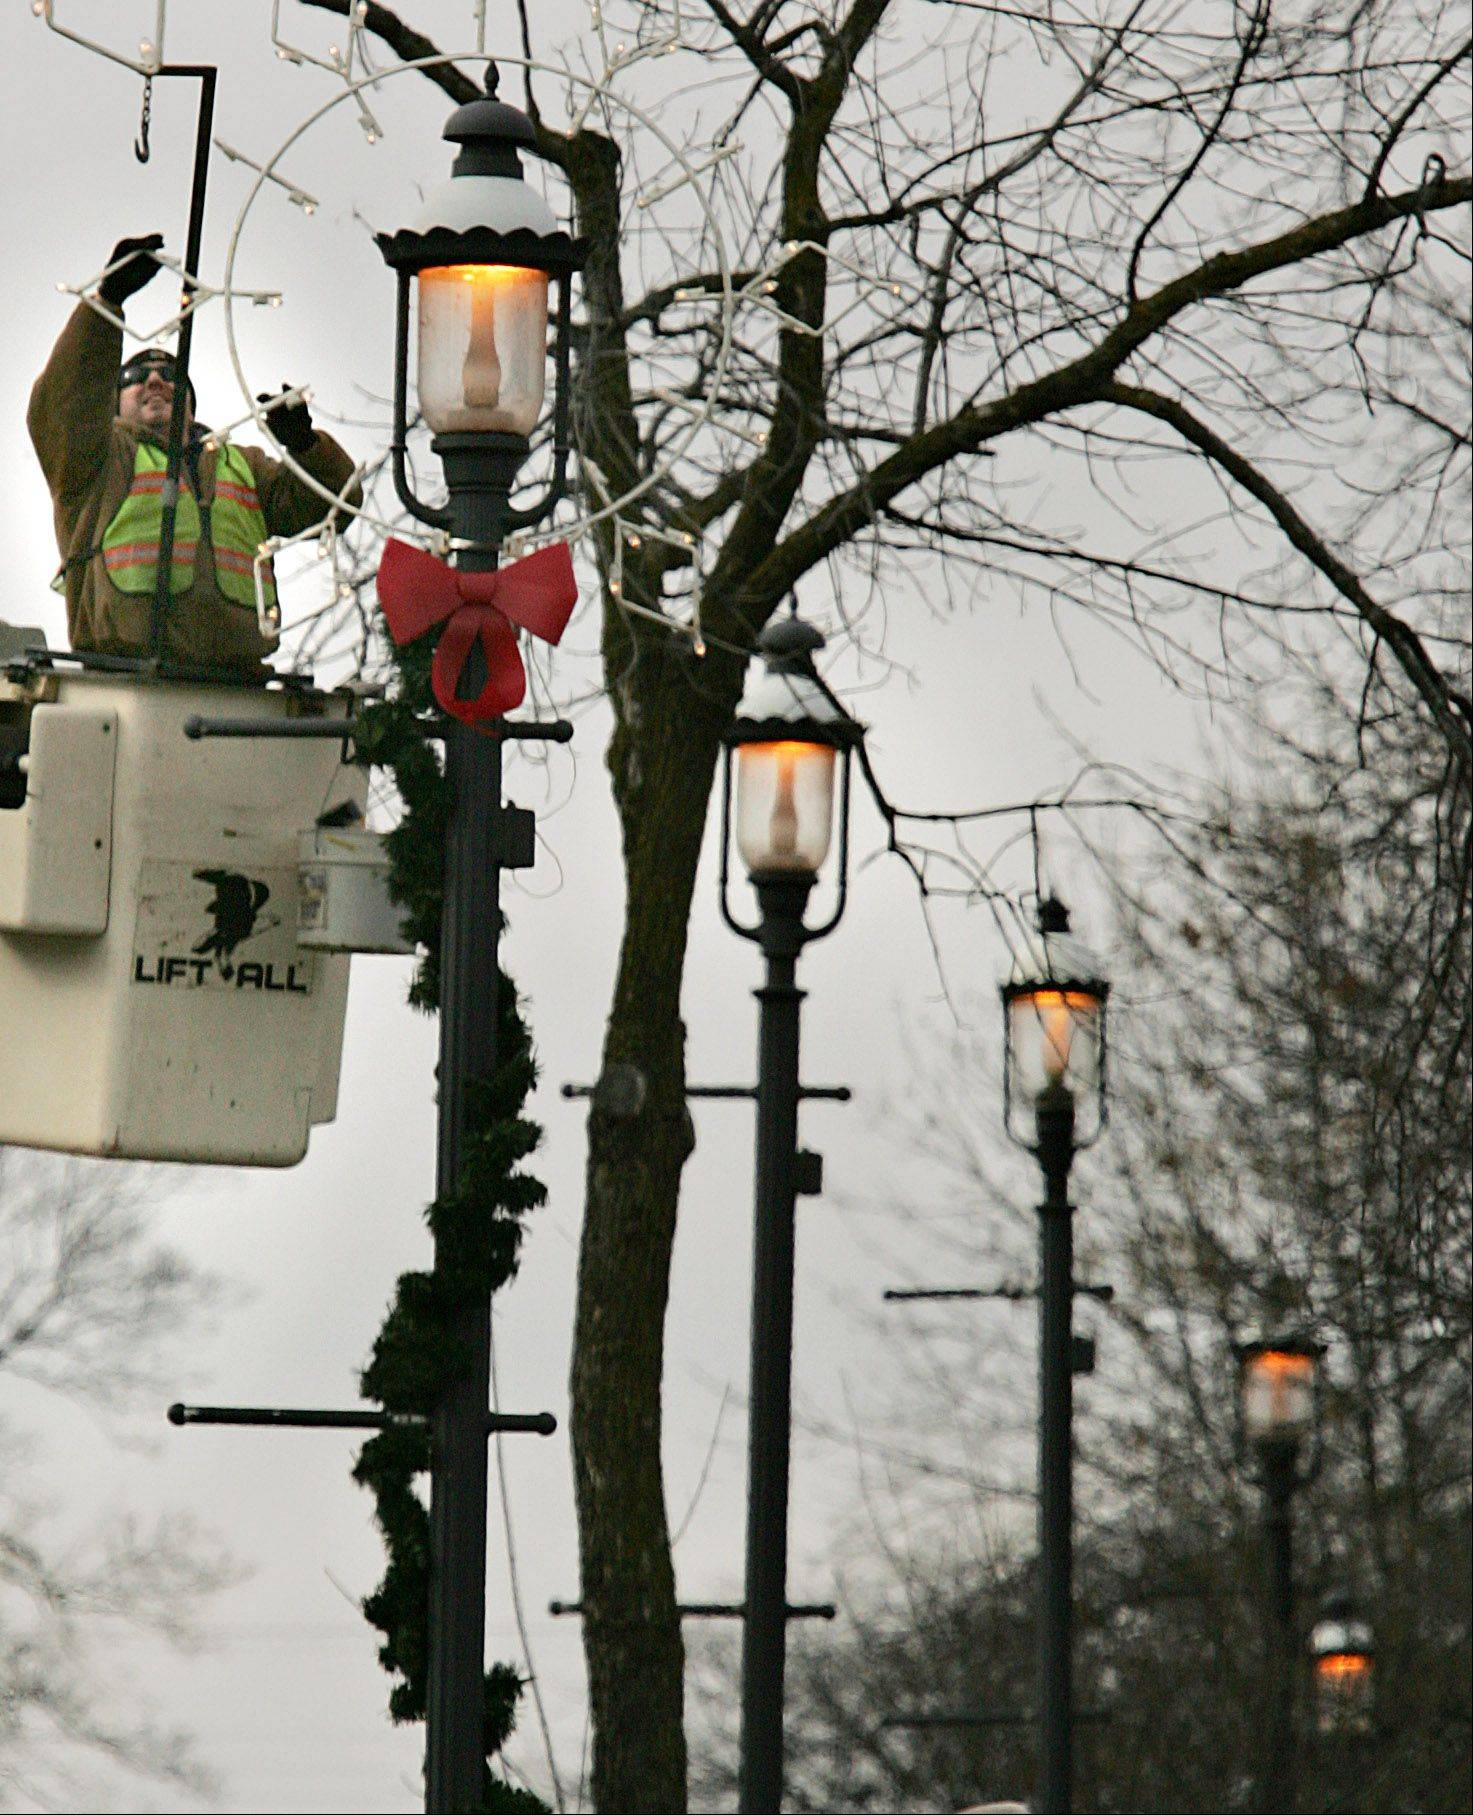 West Dundee Public Works employee Anthony Faflik of Rolling Meadows helps install holiday decorations along Rt. 72 in downtown West Dundee Monday. In order to hit all the lamp posts along that stretch of road, the crew will be working through Tuesday to get all of the decorations installed.